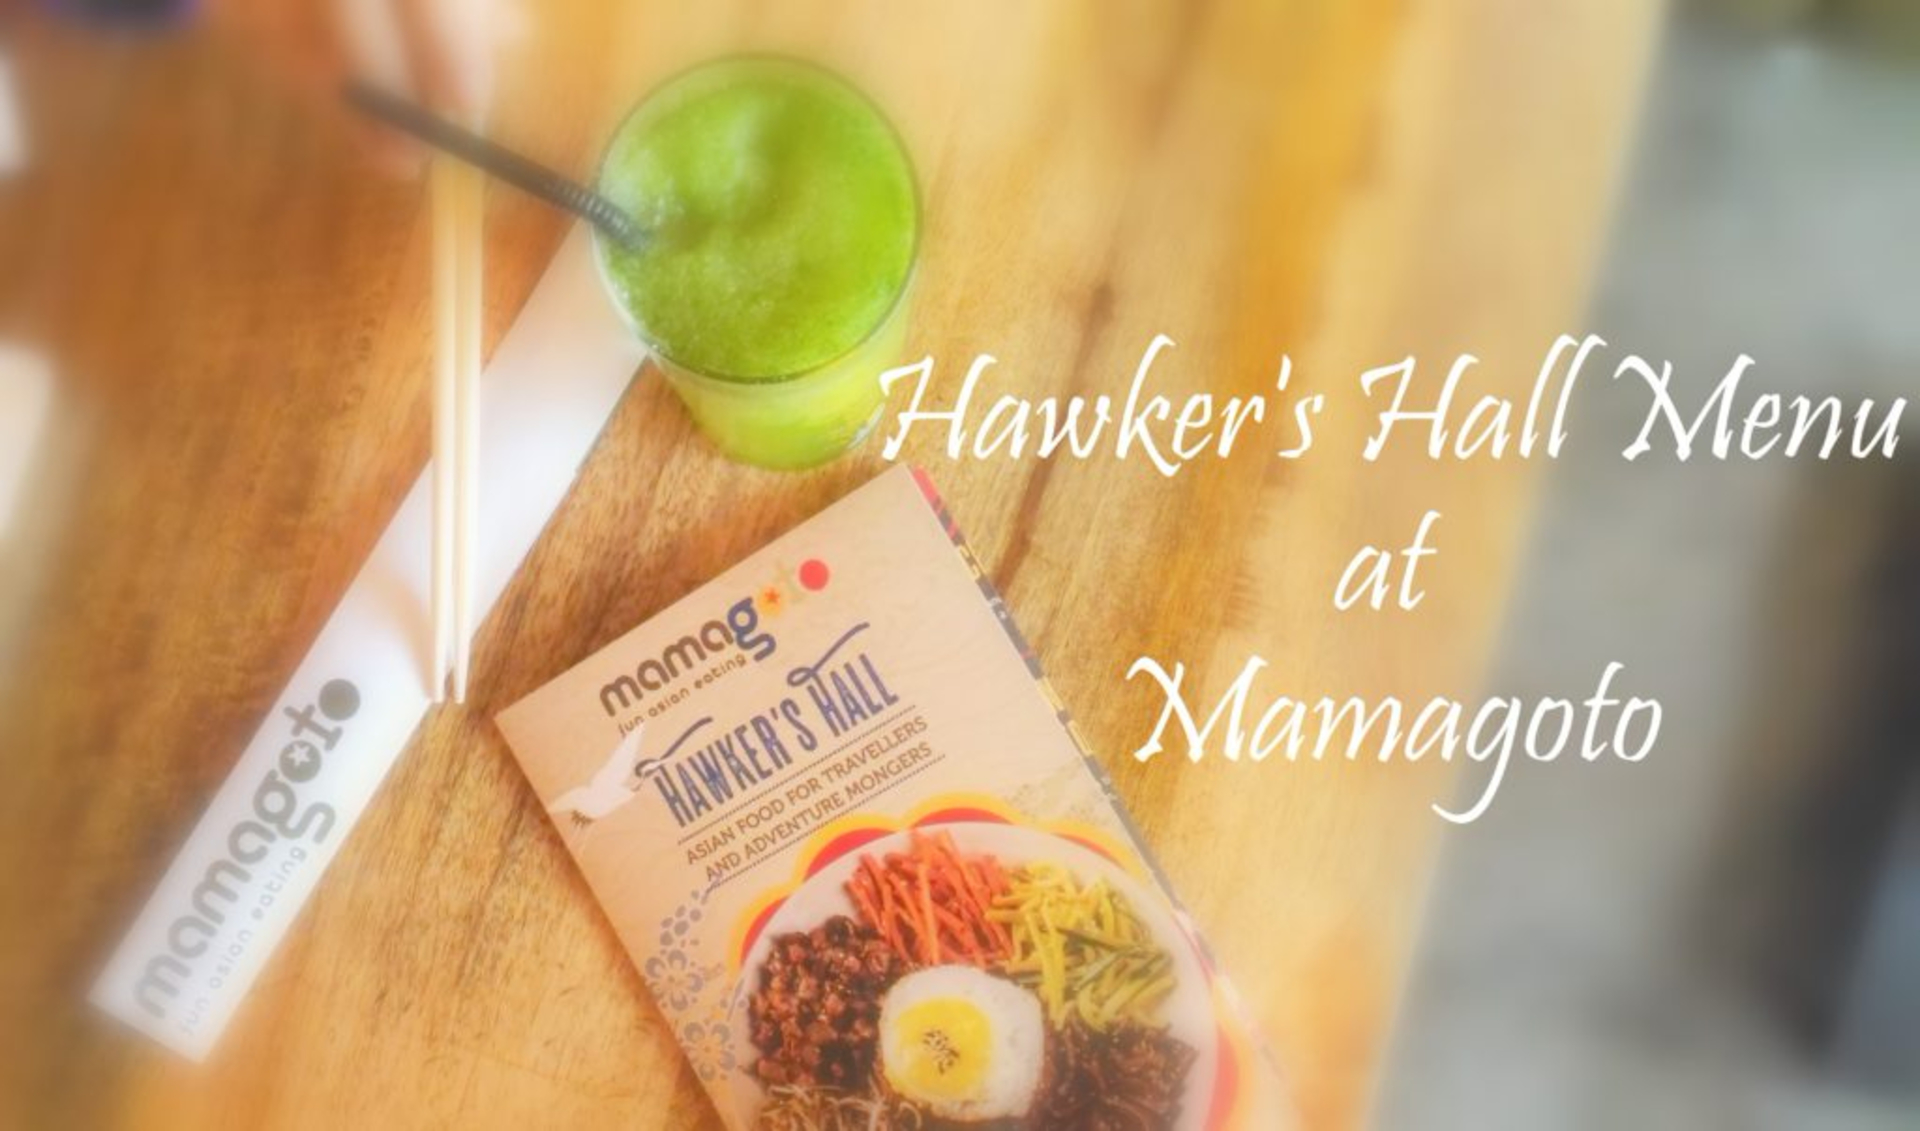 Hawkers Hall Menu, Mamagoto image